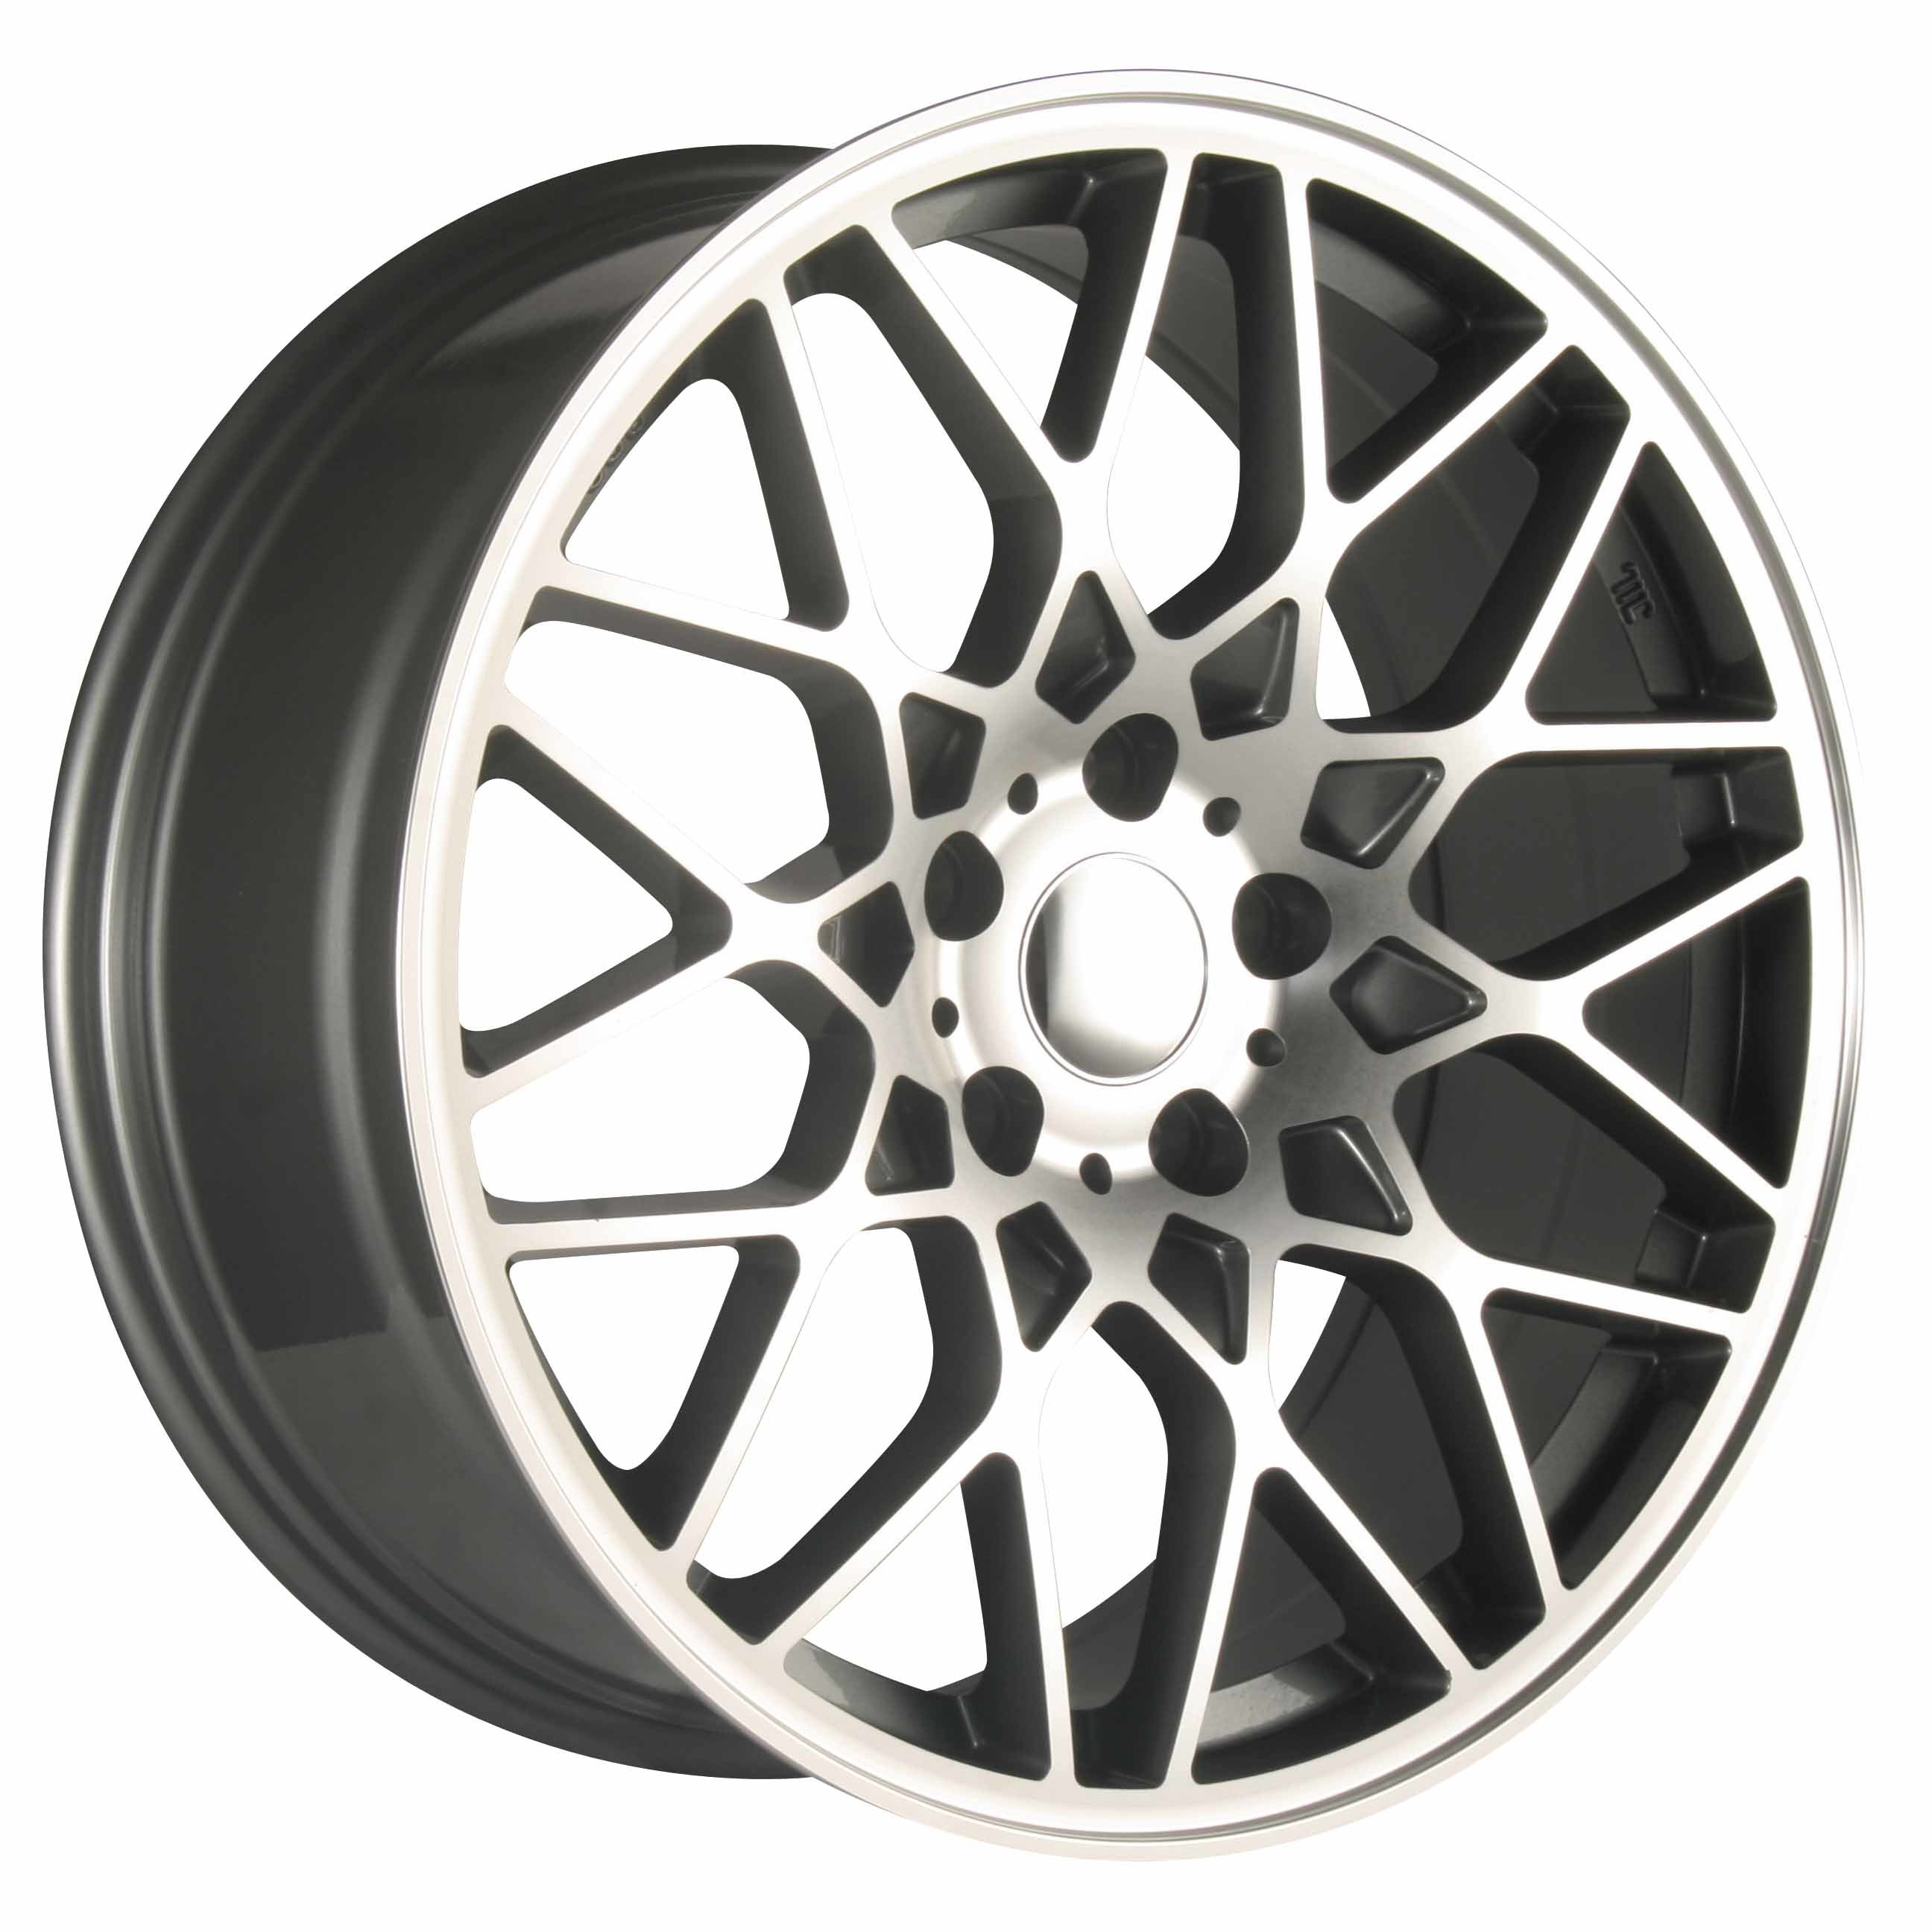 18inch Front/Rear Alloy Wheel for Aftermarket